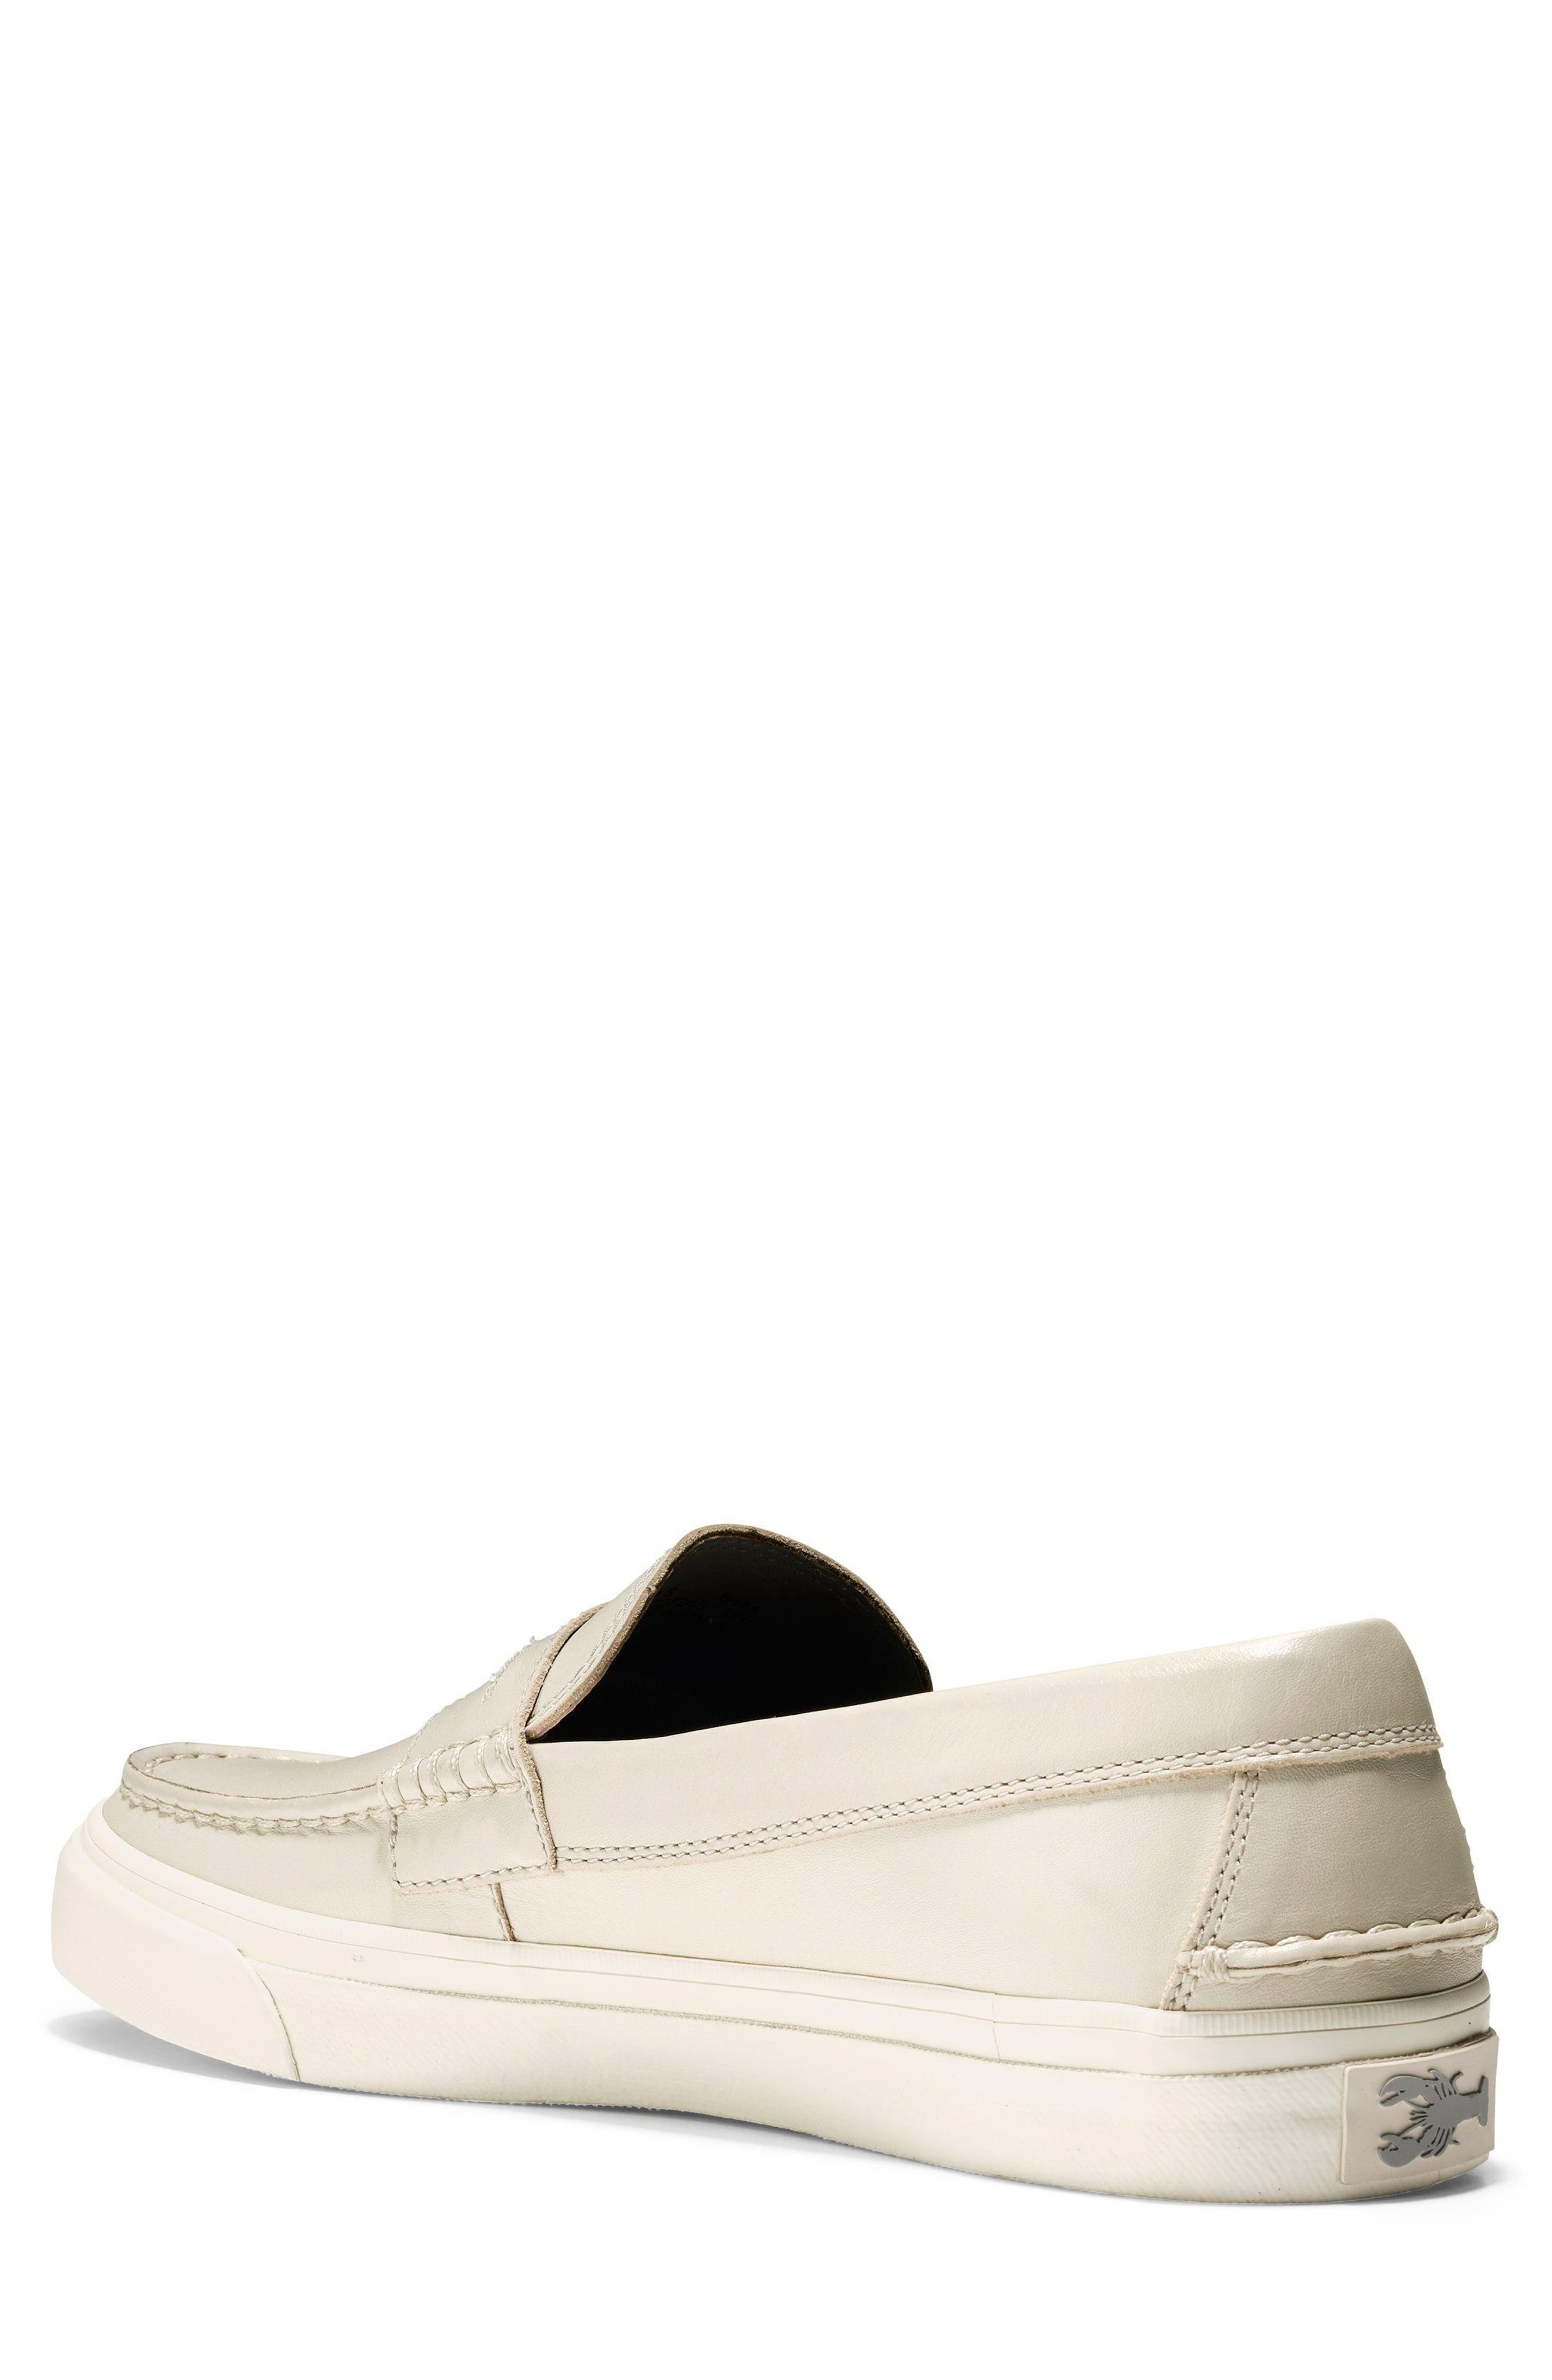 Pinch Weekend LX Penny Loafer,                             Alternate thumbnail 16, color,